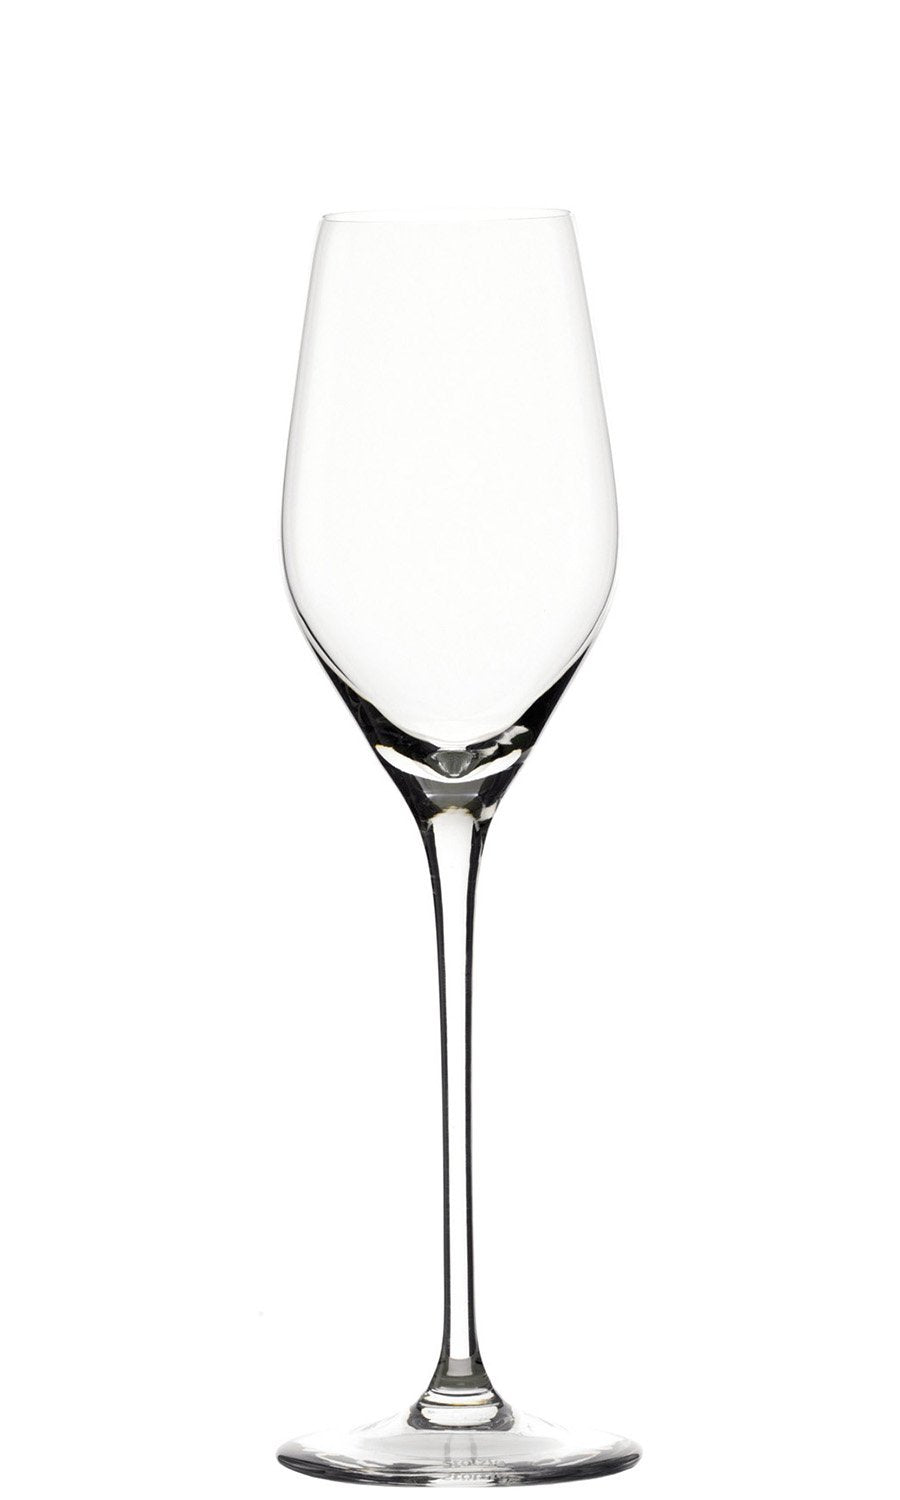 Stoelzle Exquisit Royal Champagne Sparkling Glass Lead Free Crystal